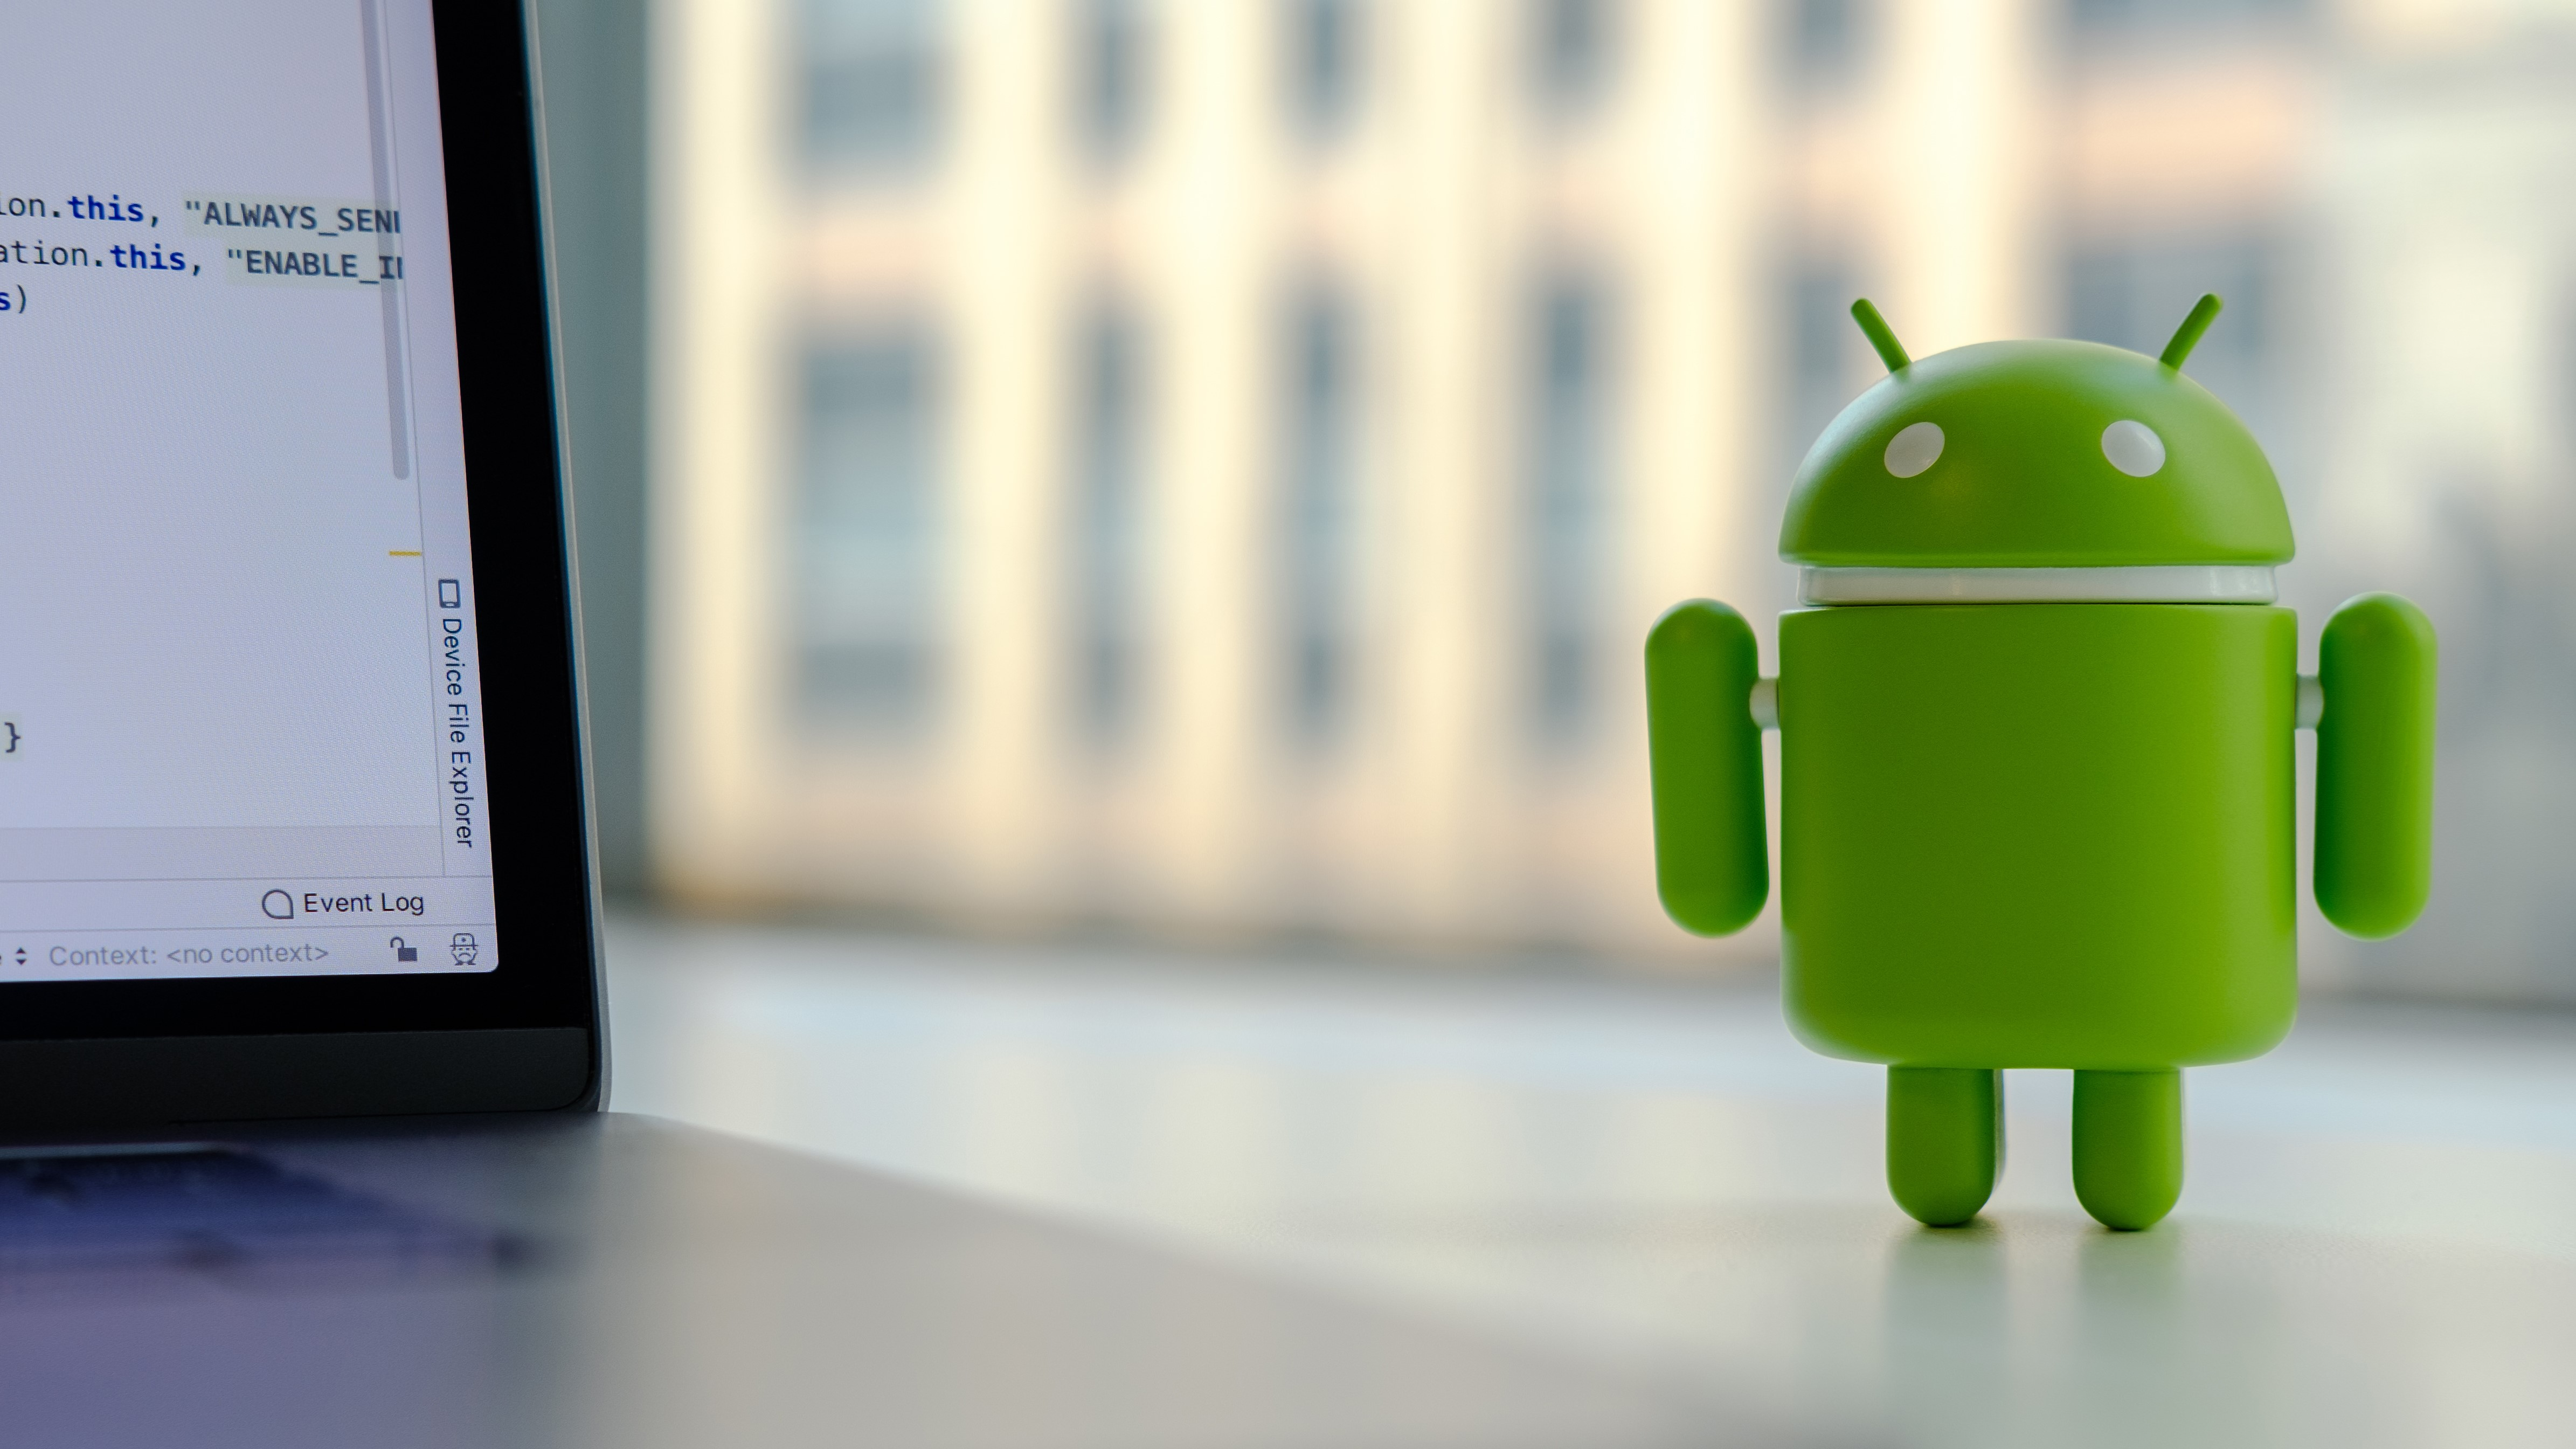 You can now get support direct from Google with the #AndroidHelp hashtag